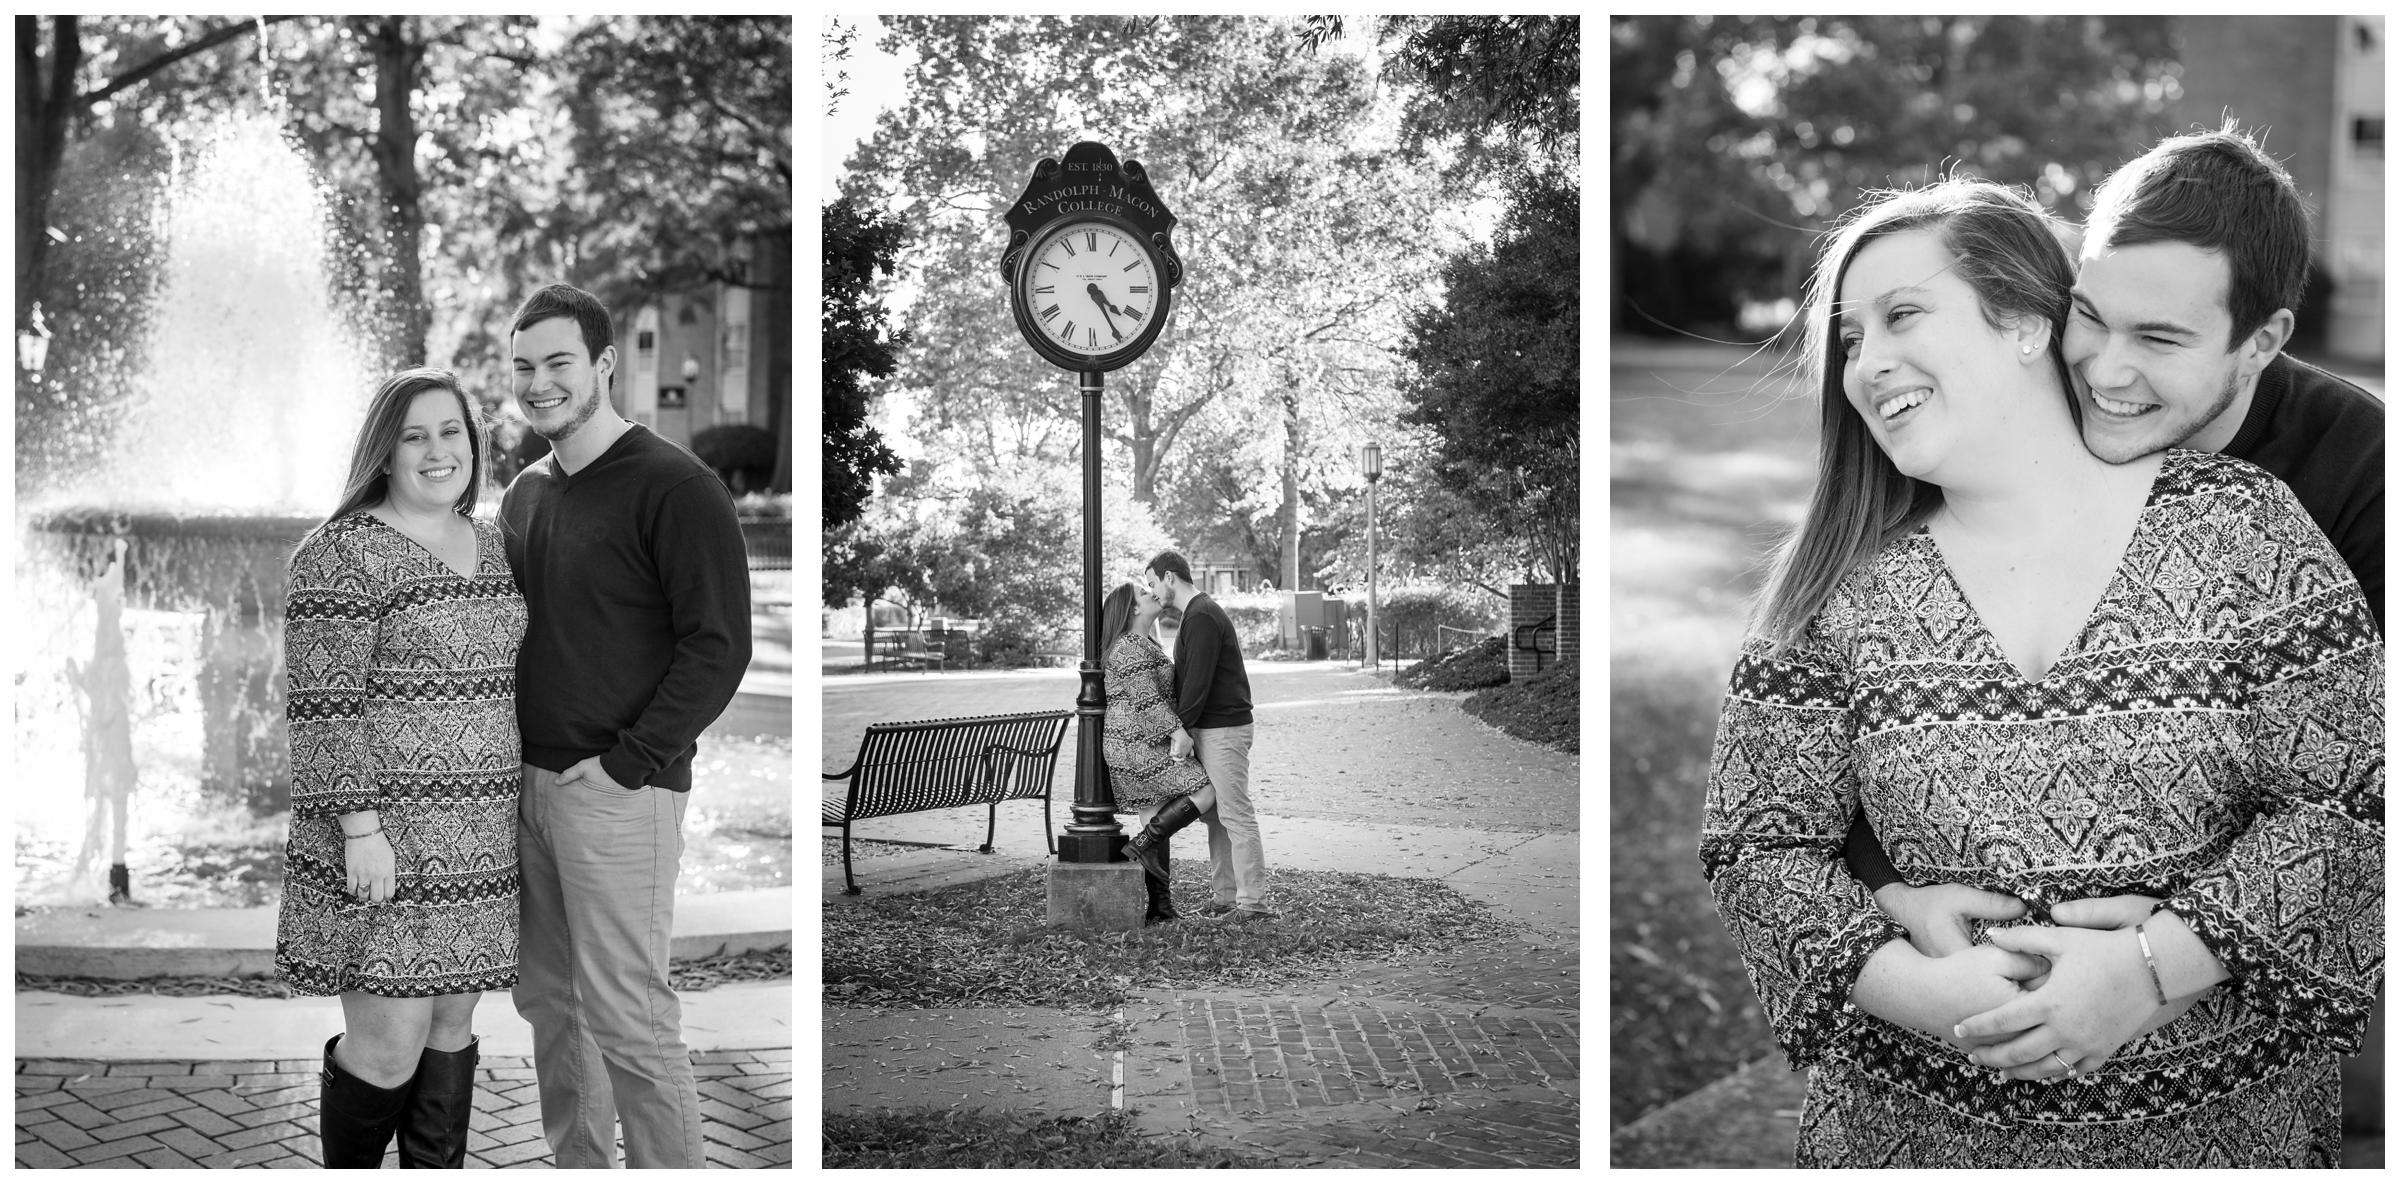 Engaged couple embracing on Randolph-Macon campus in Ashland, Virginia.